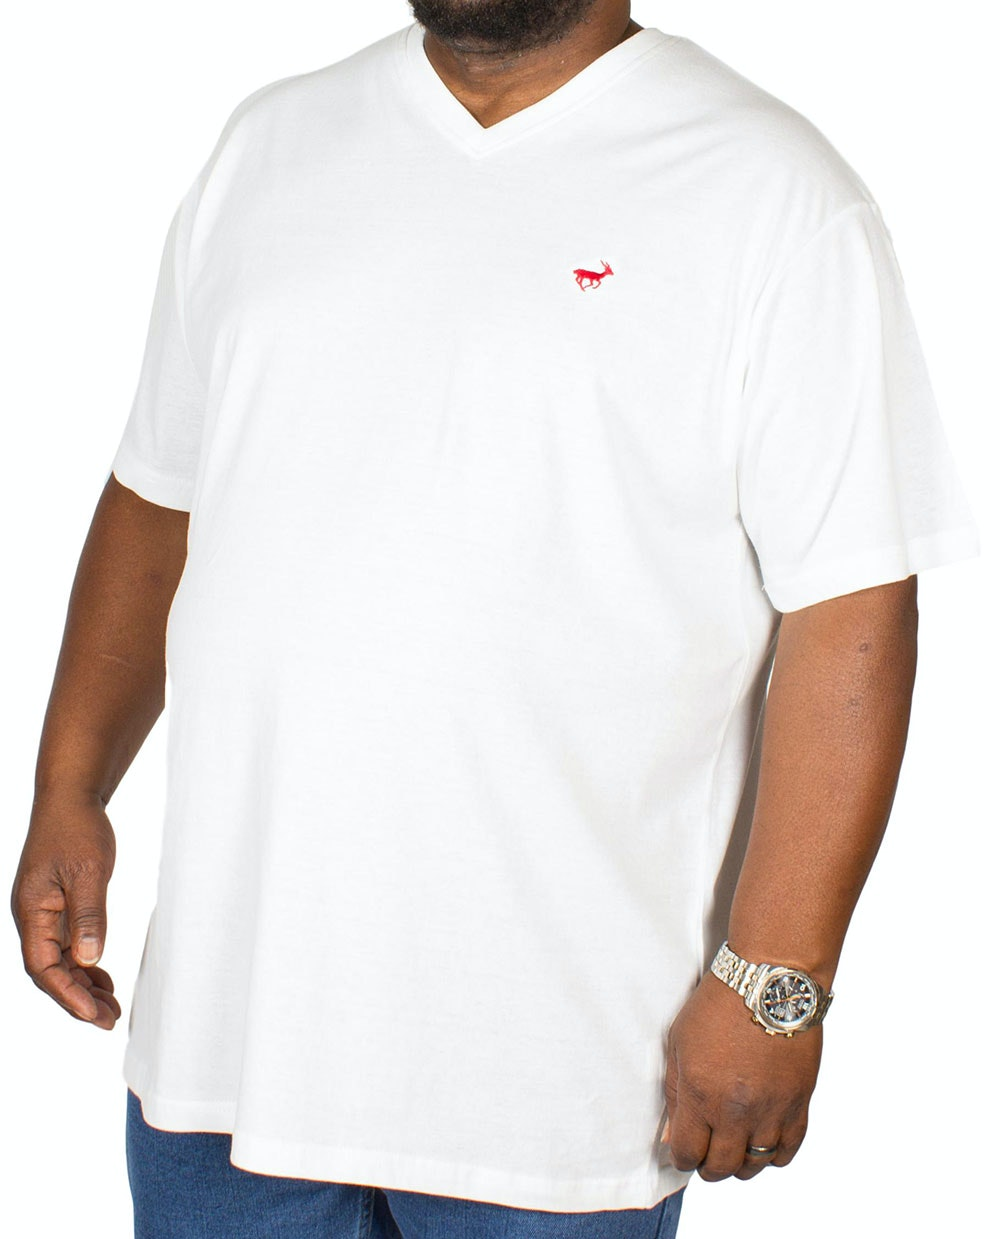 Bigdude Signature V-Neck T-Shirt Off White